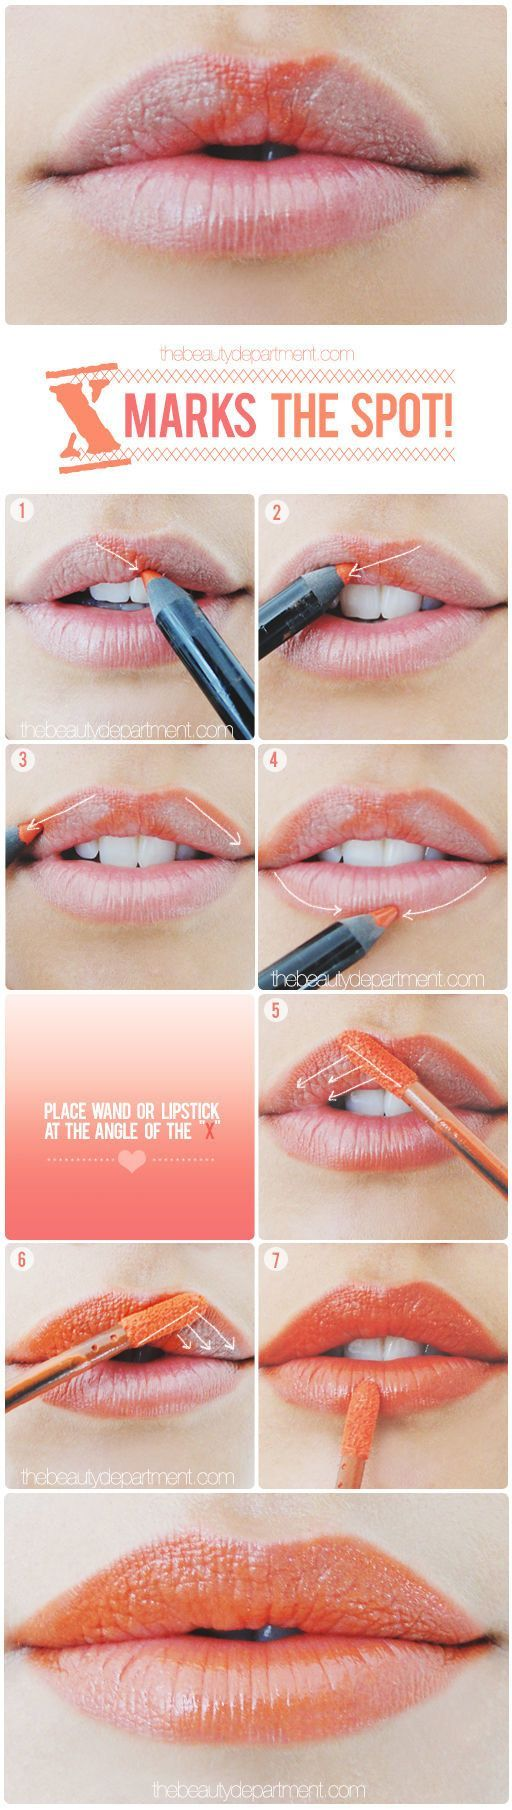 "Get a perfect Cupid's bow — and a perfect line of color all around the edges of your lips — by using a lip liner to make an ""x"" on your upper lip."